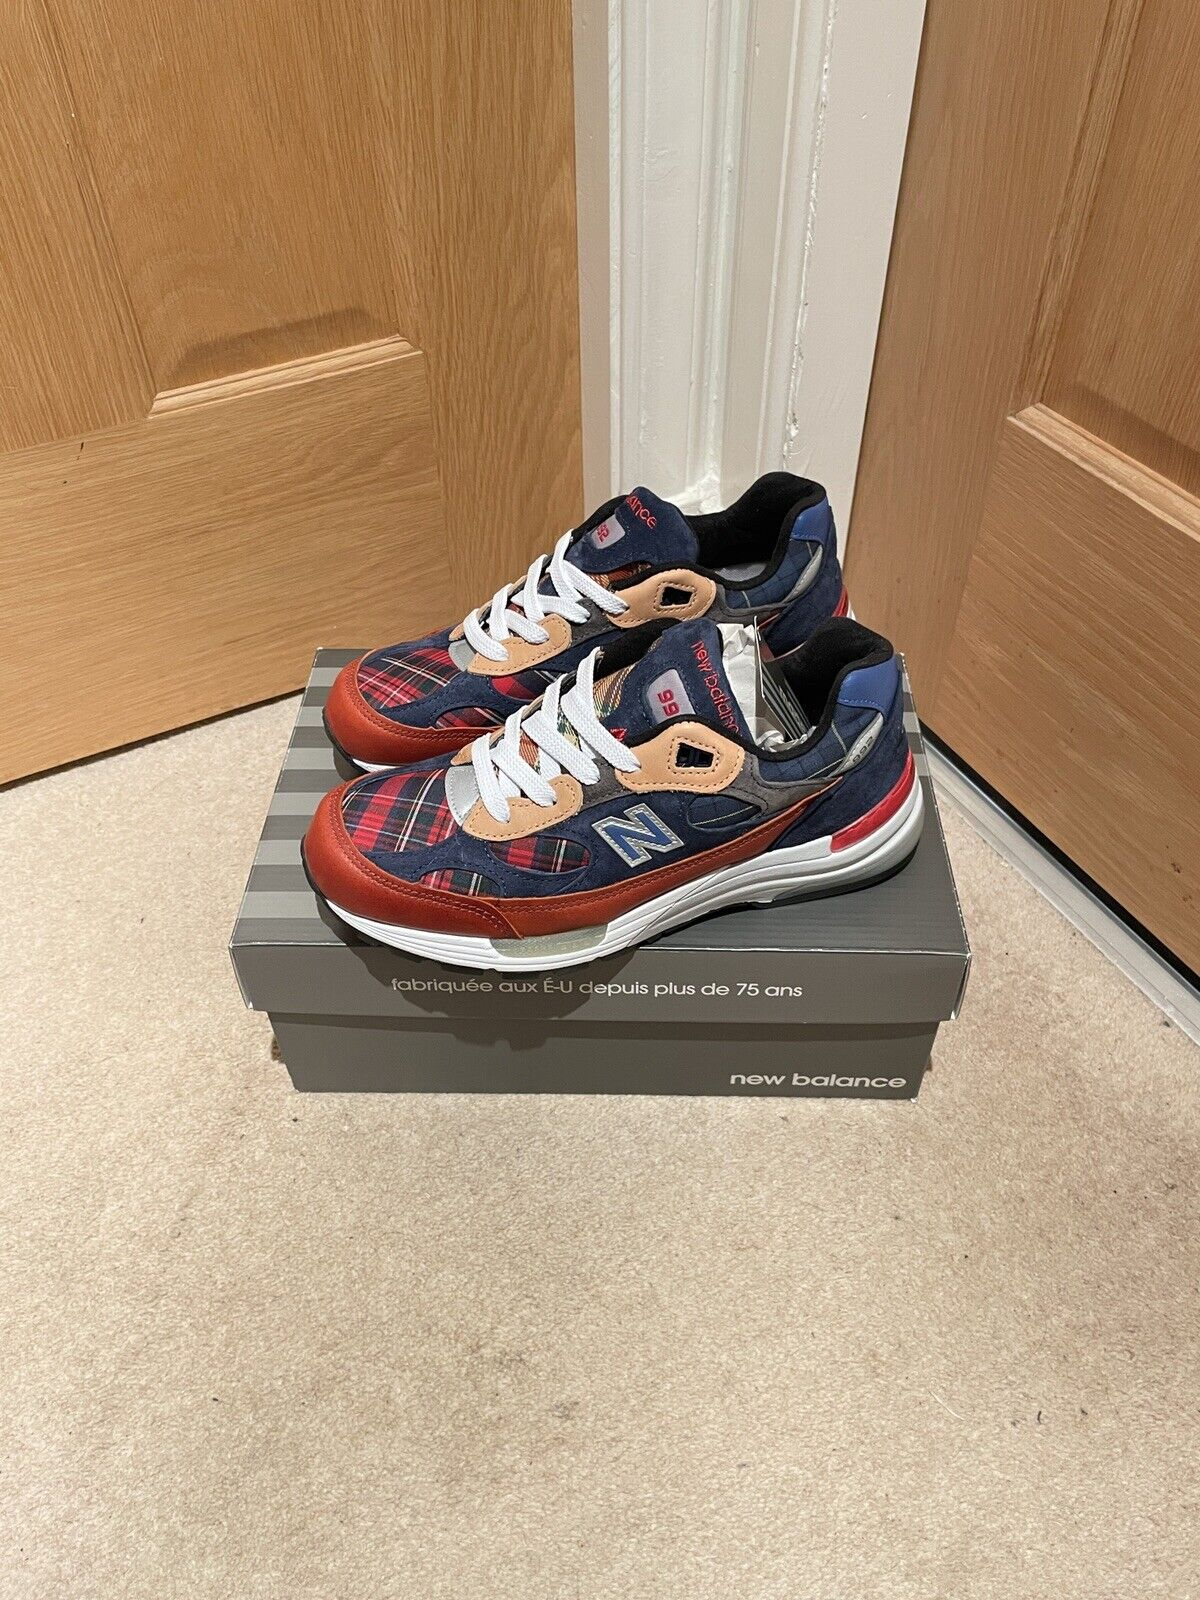 New Balance 992 USA M992AD CNCPTS Exclusive Plaid Patchwork - UK7/US7.5